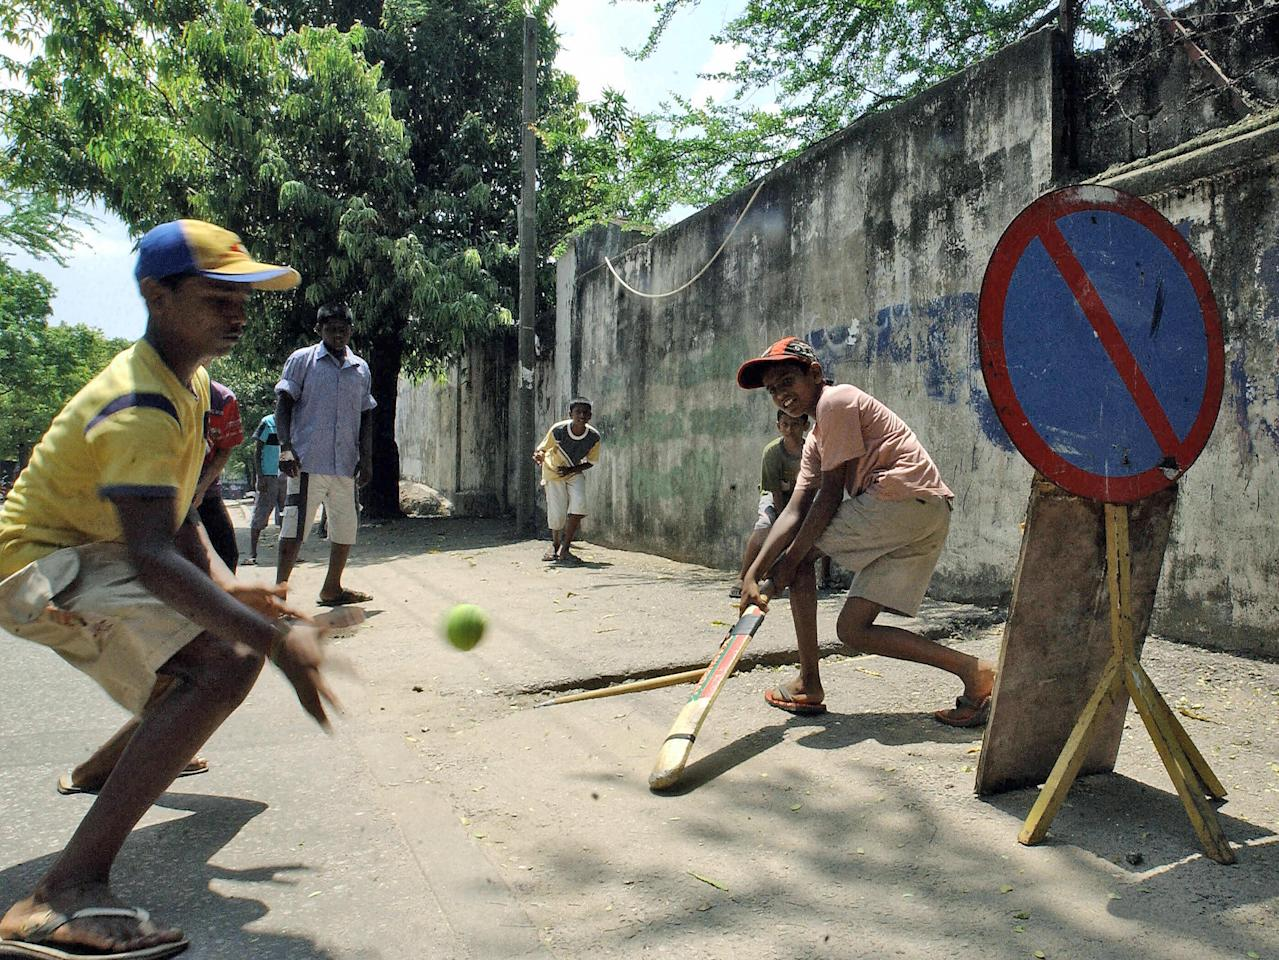 Colombo, SRI LANKA: TO GO WITH CRICKET-WC2007-SRI-UNREST-FEATURE  Sri Lankan children play a cricket match on the streets of Colombo, 20 April 2007.  Sri Lankans treat cricket as a religion, but the sport has failed to heal wounds of this deeply divided nation despite its ethnically-mixed World Cup squad displaying strong unity.The success of Sri Lanka's multi-ethnic team at the ongoing tournament is seen as an example of shedding communal differences, but not many are optimistic that it will stop the bloodshed.   AFP PHOTO/Sanka VIDANAGAMA (Photo credit should read SANKA VIDANAGAMA/AFP/Getty Images)